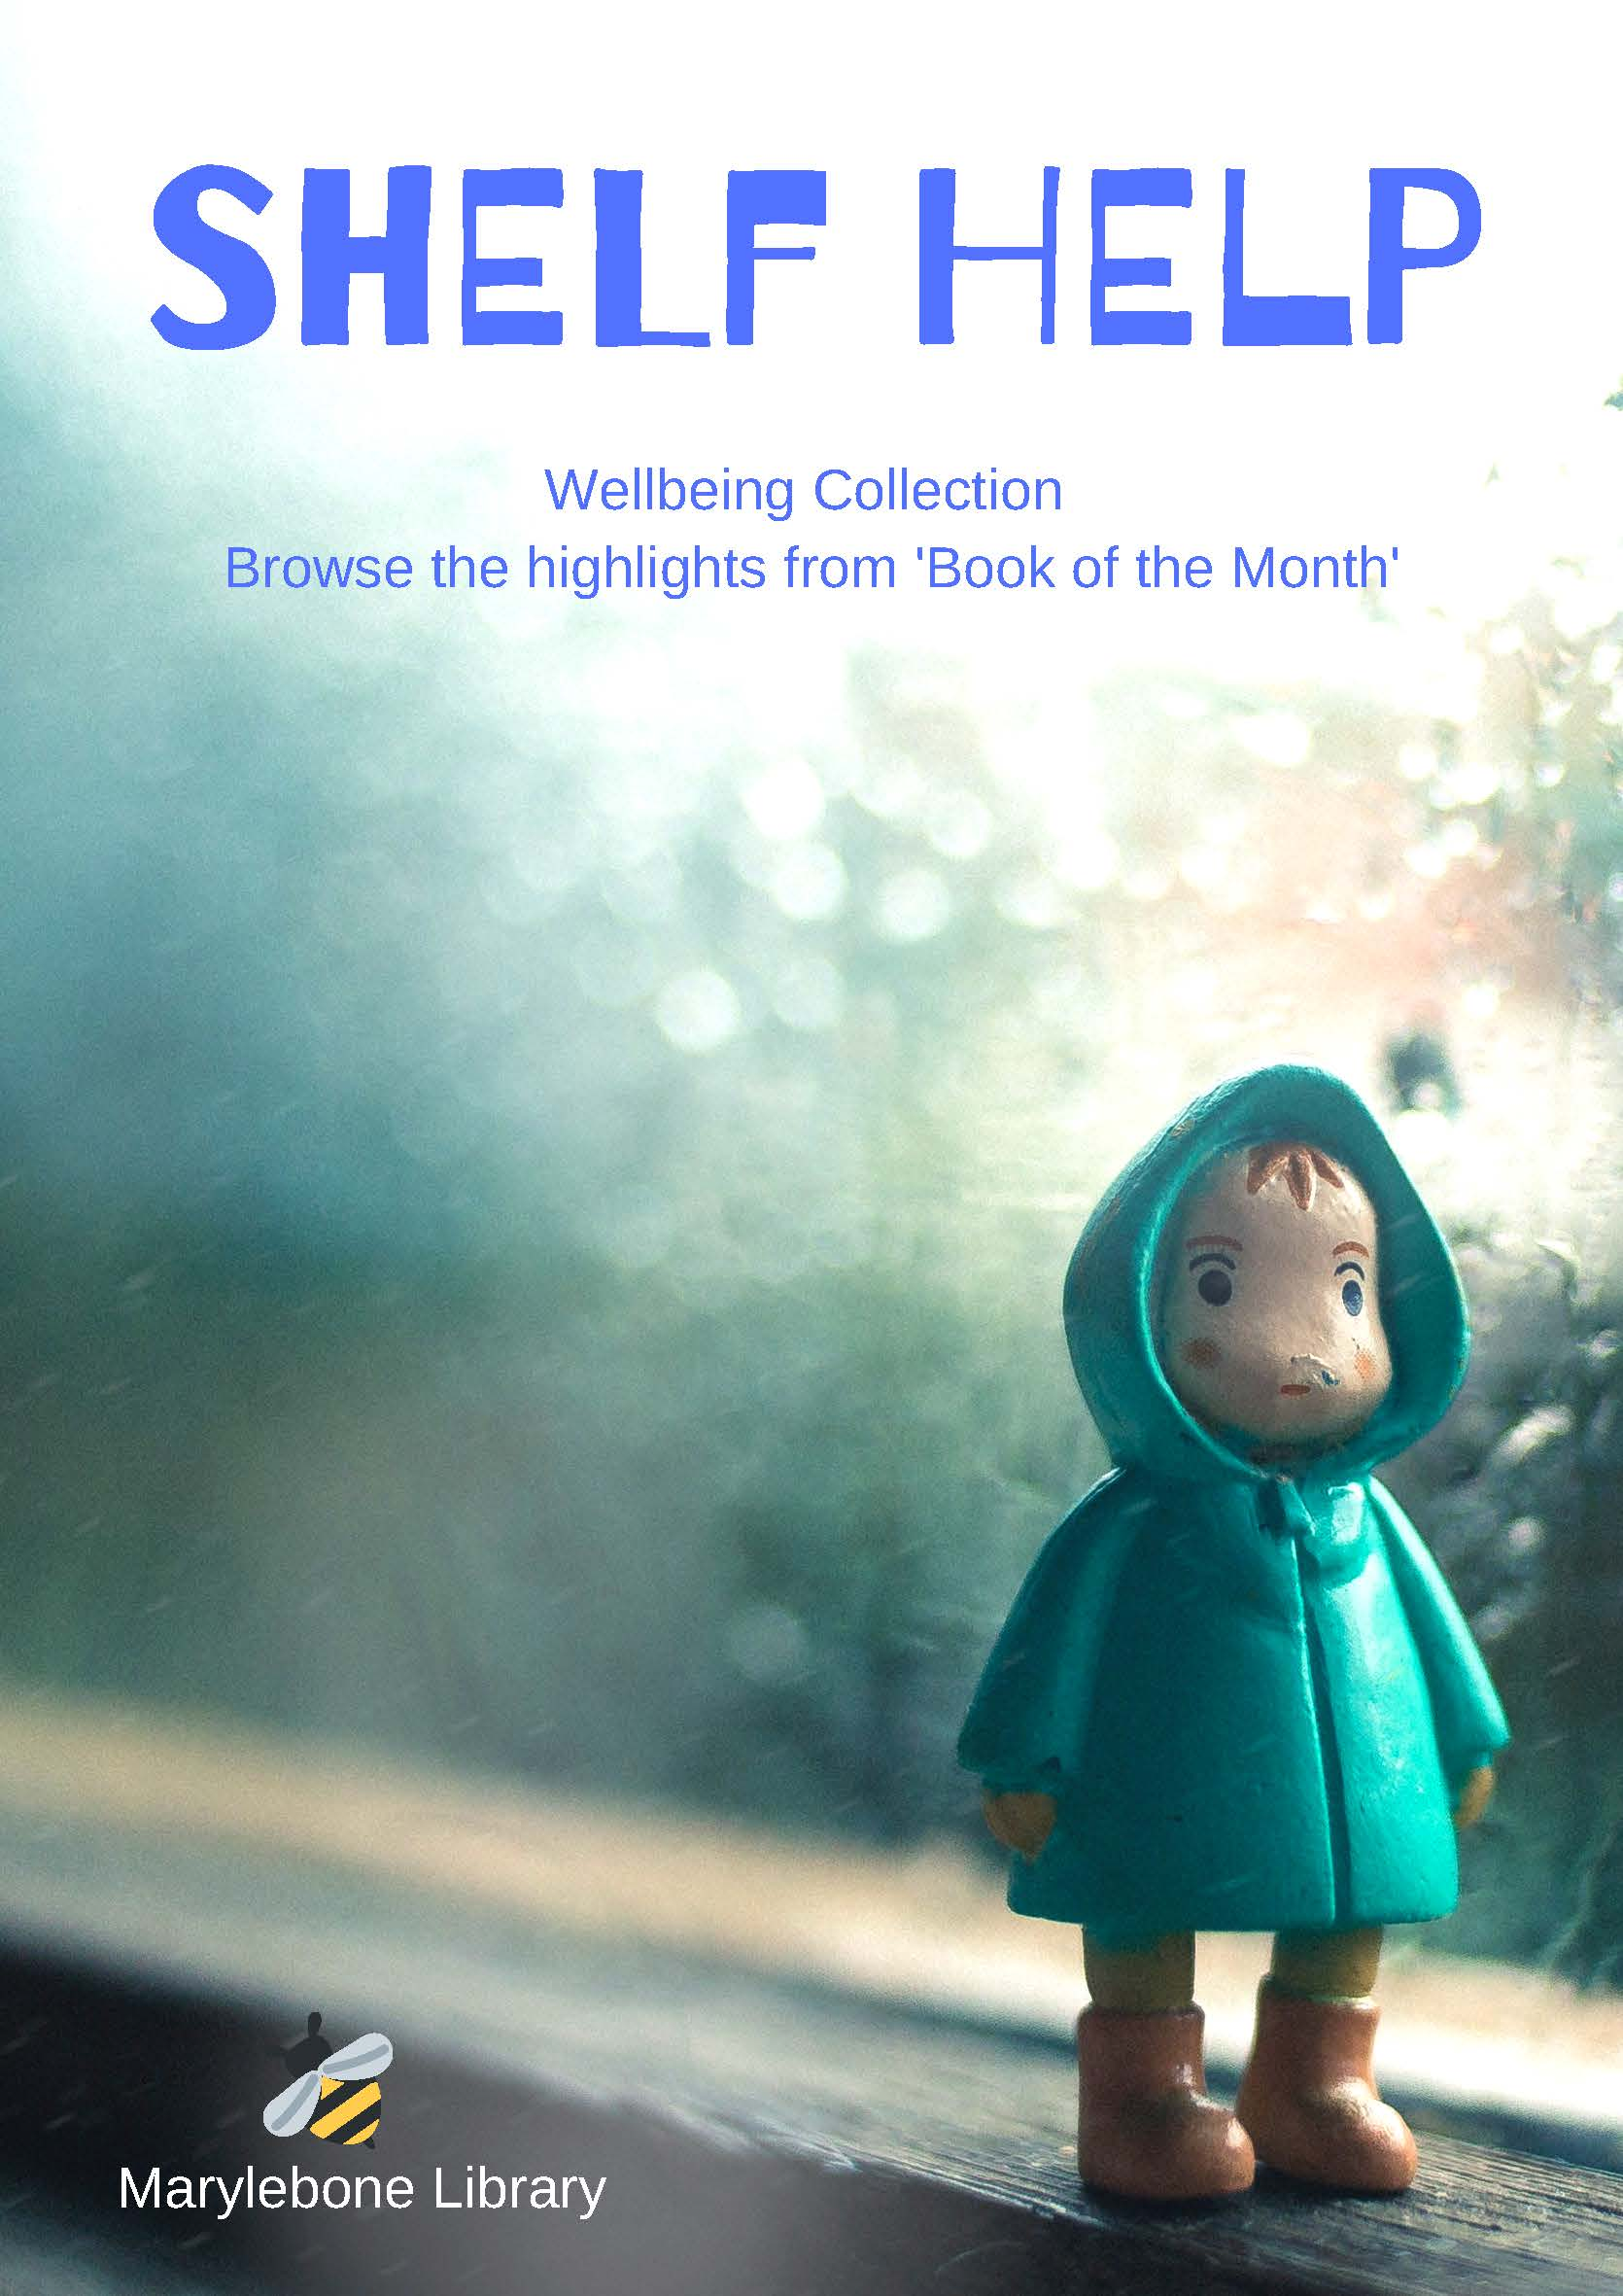 Shelf Help wellbeing Collection book highlight of the month front cover of booklet